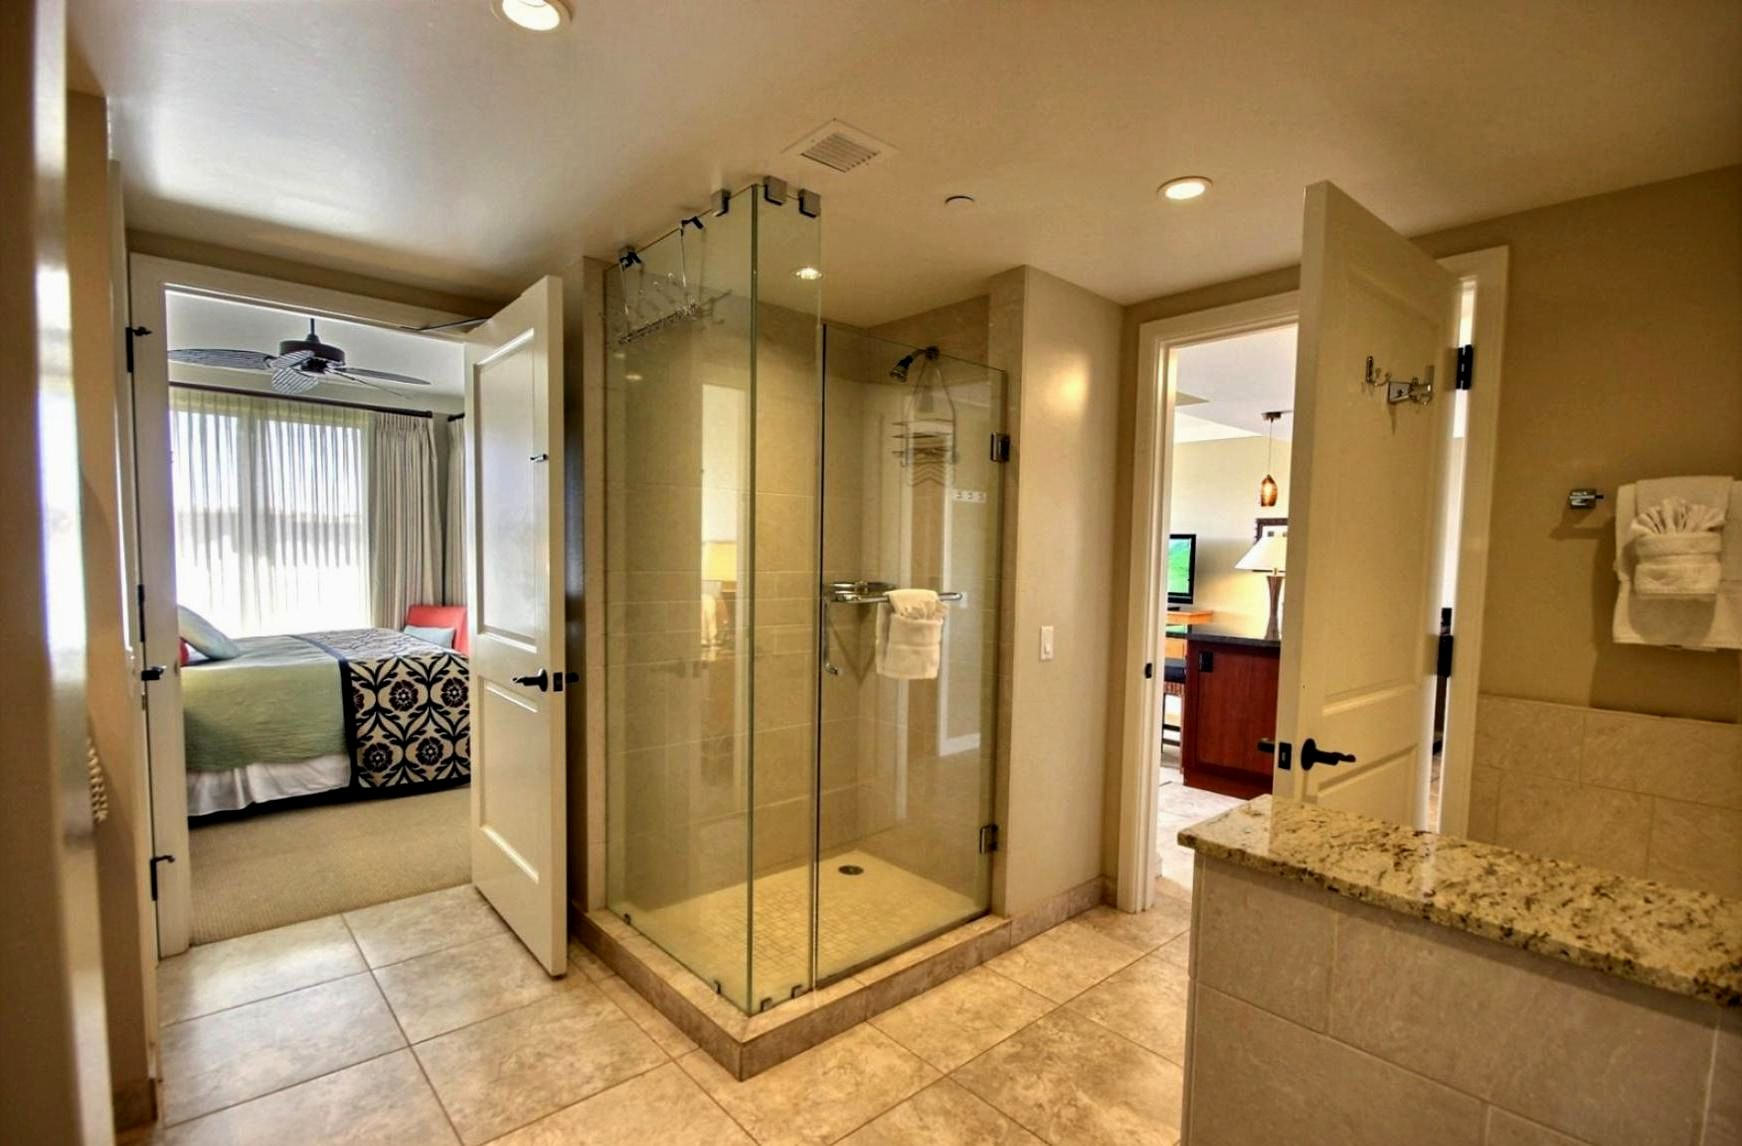 fascinating jack and jill bathroom concept-Amazing Jack and Jill Bathroom Online